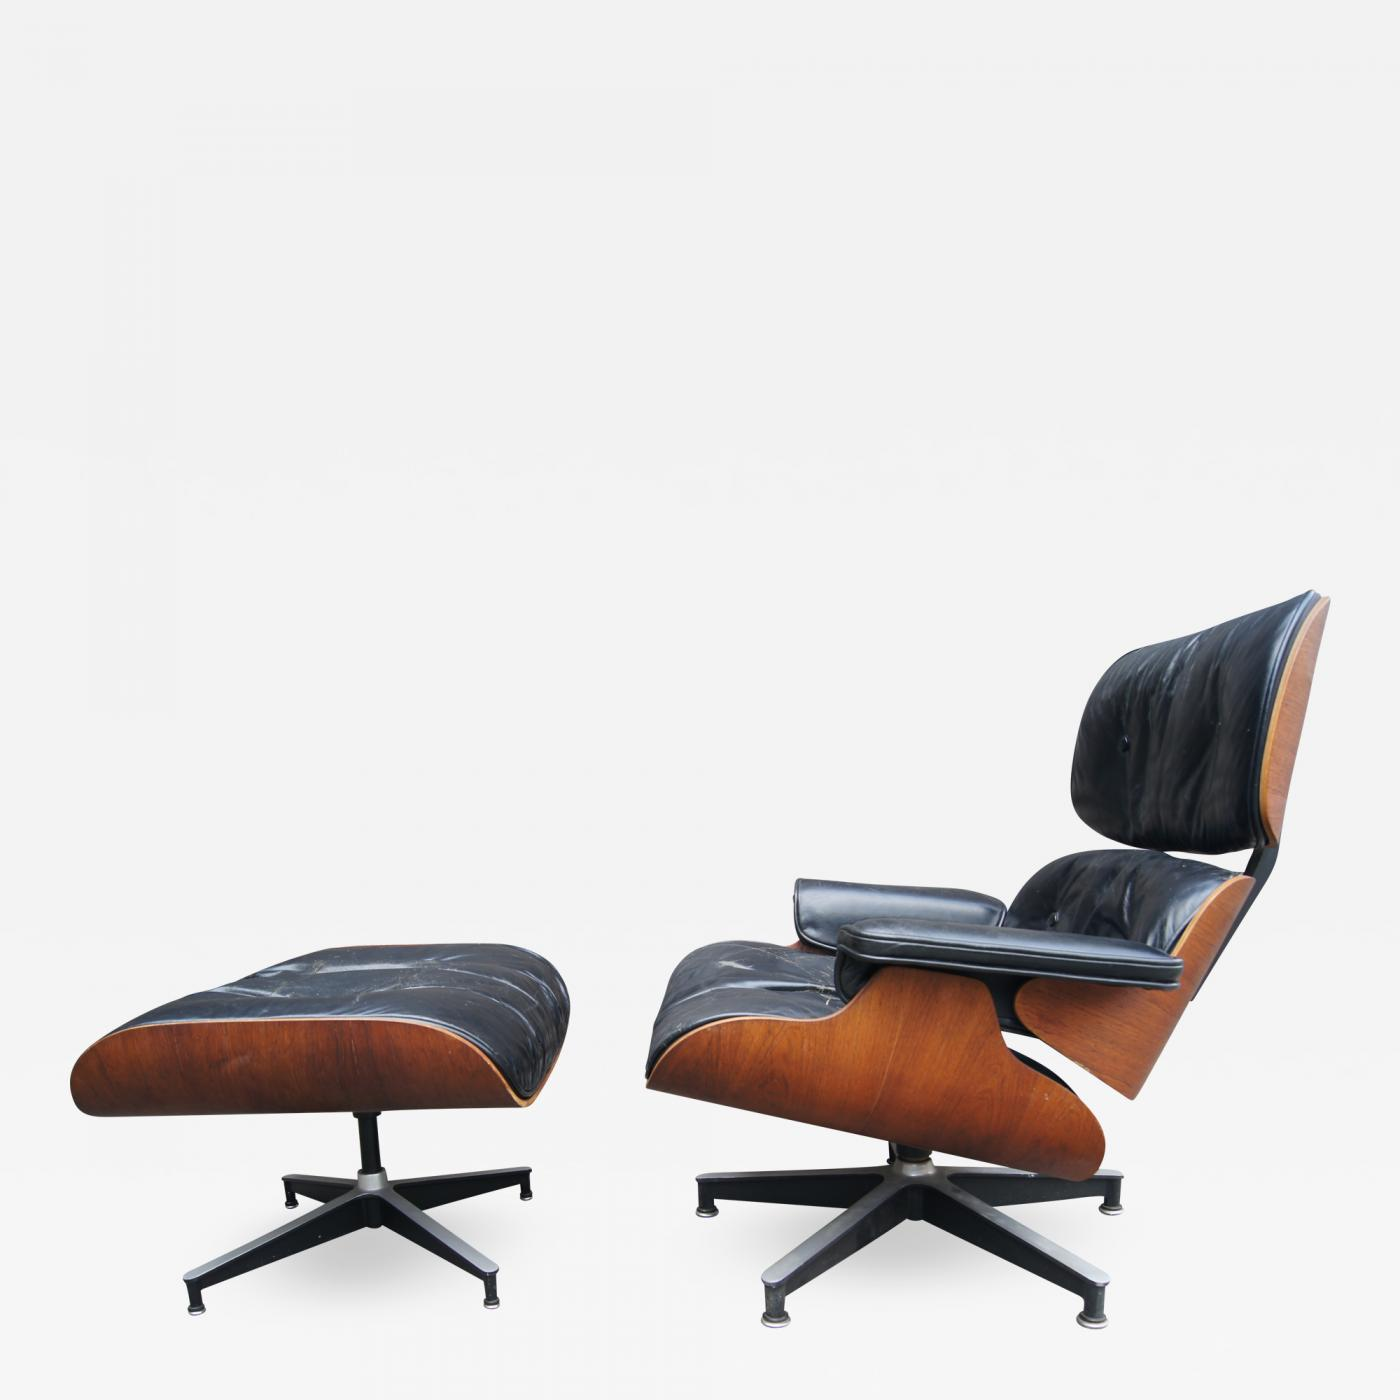 Astounding Charles Ray Eames Lounge Chair Ottoman Model 670 671 By Charles Ray Eames For Herman Miller Cjindustries Chair Design For Home Cjindustriesco